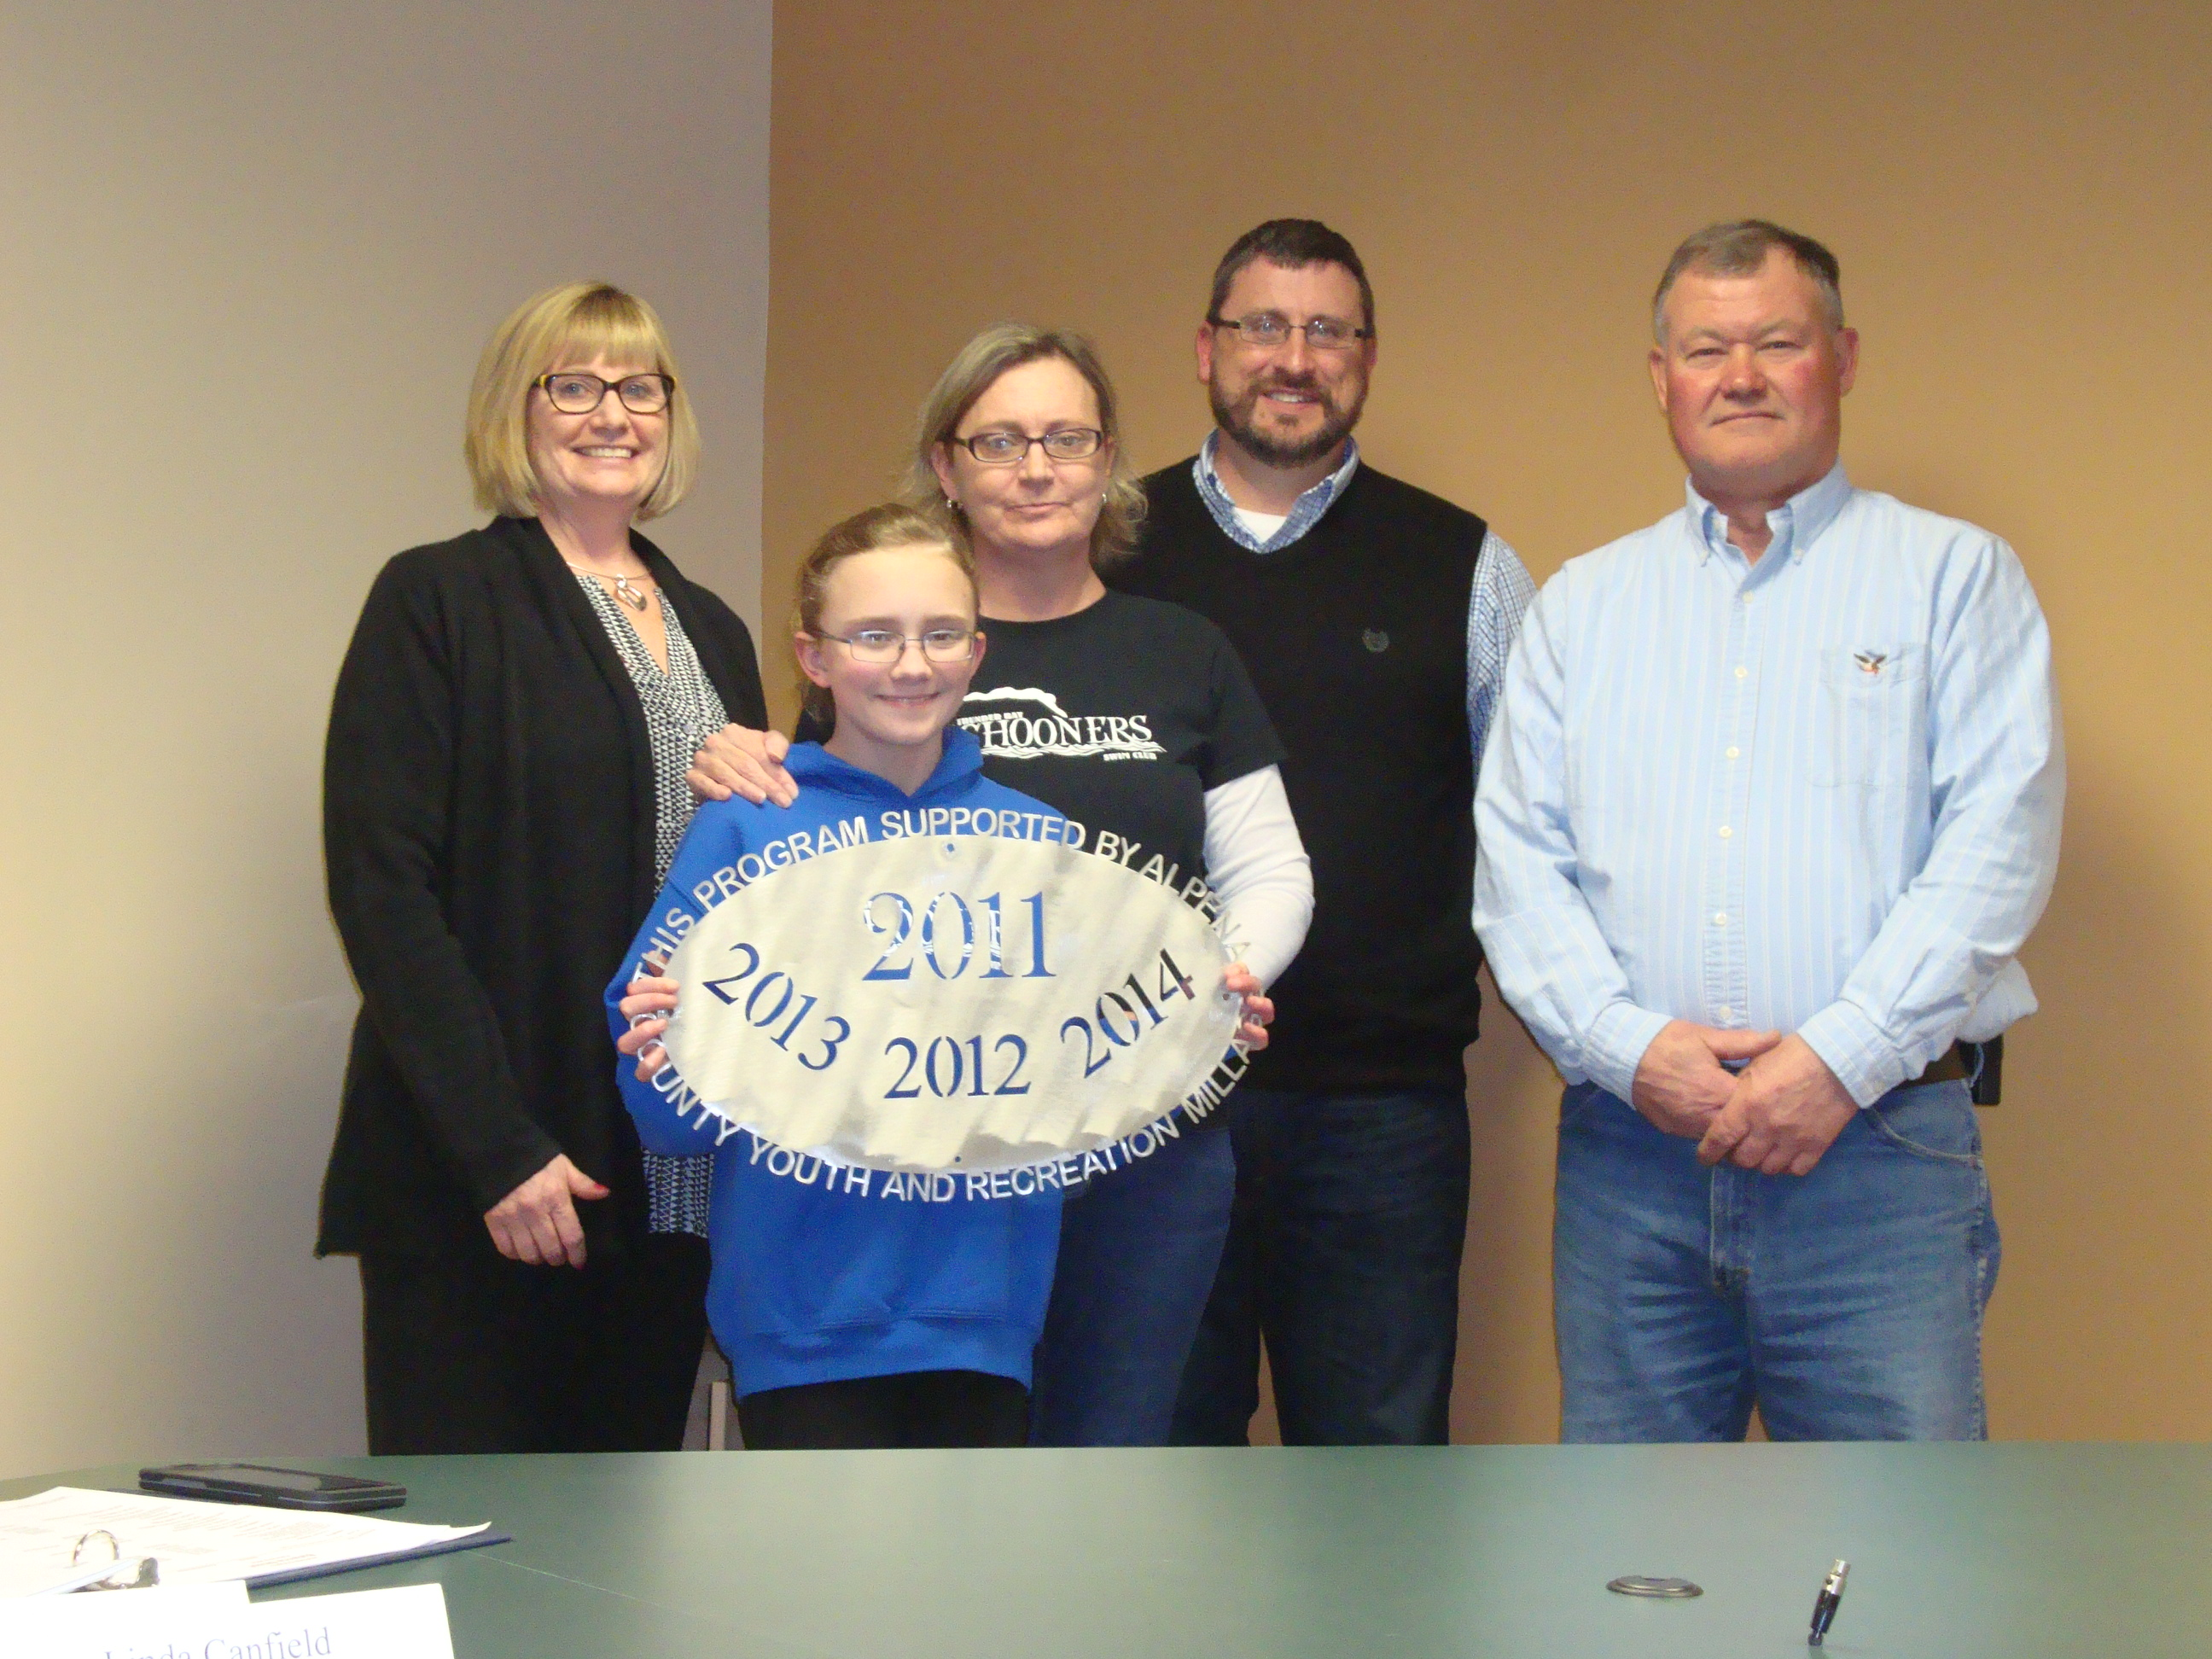 Alpena Swim Club - Thunder Bay Schooners $6,000 Operating Support to reduce the cost to players